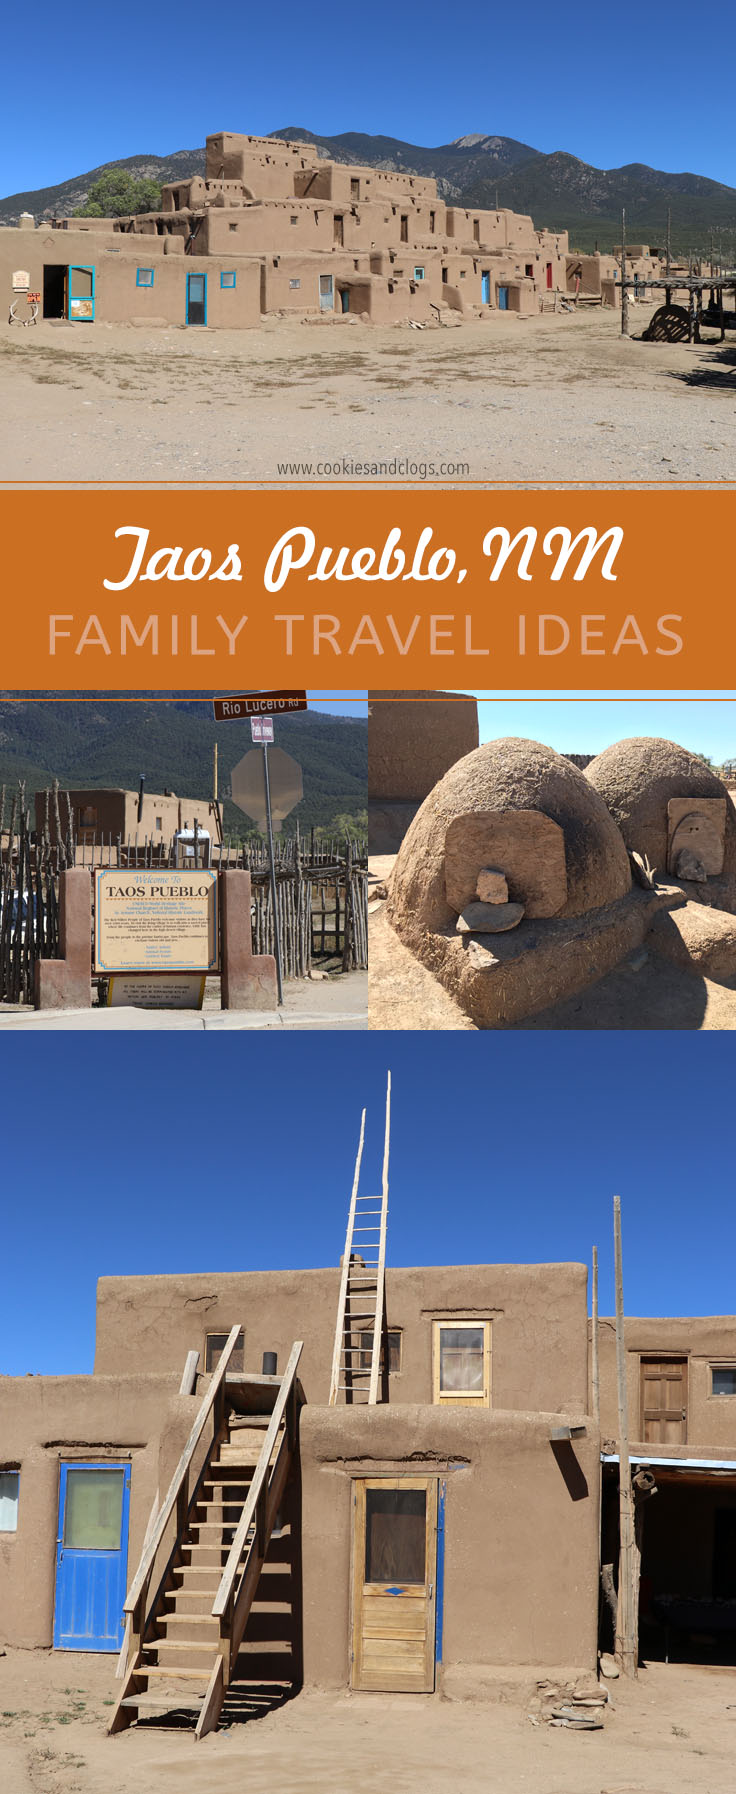 Taos Pueblo New Mexico Road Trip Travel Tips